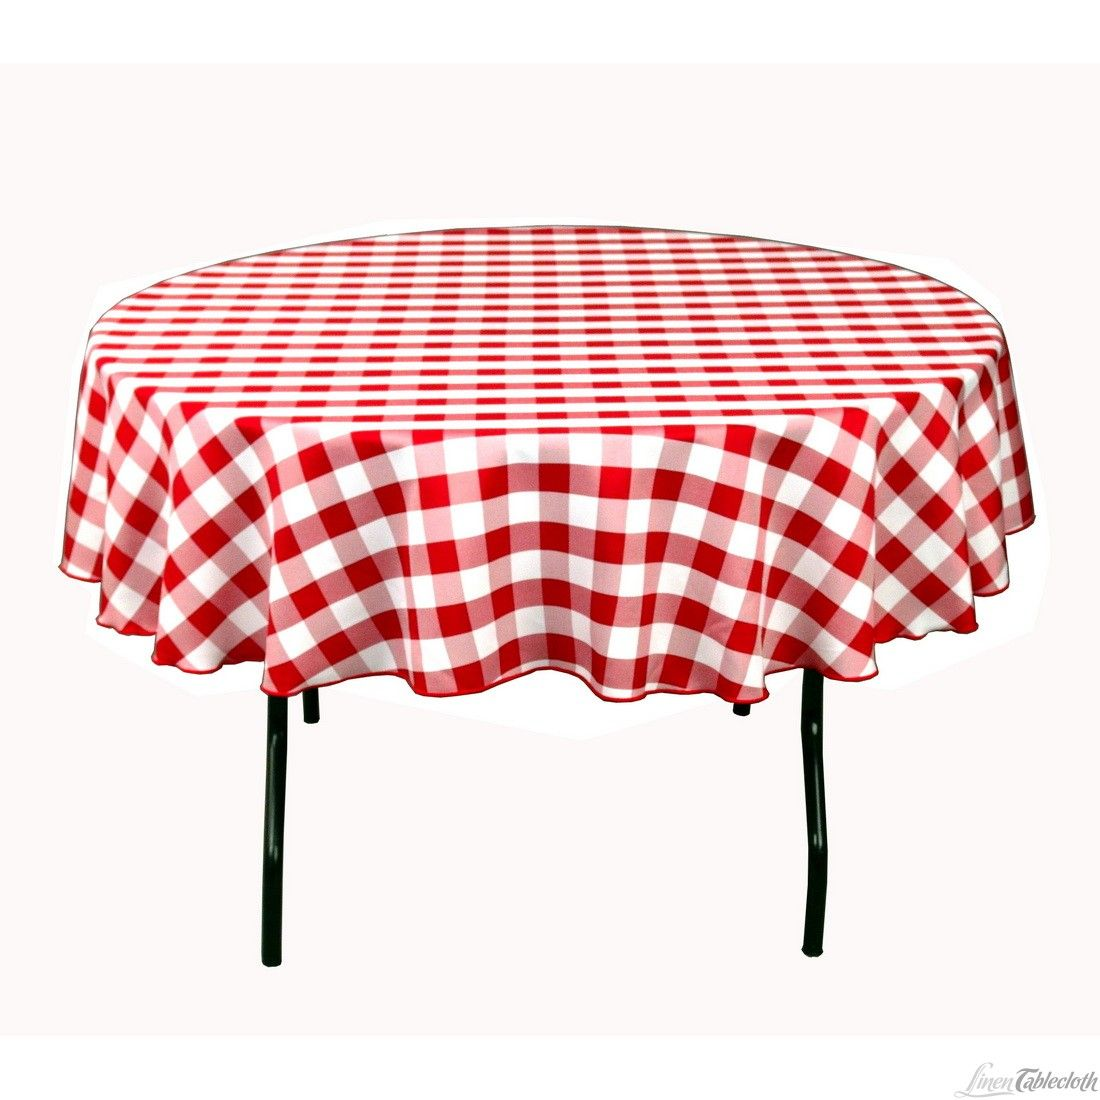 Awesome Buy 90 Inch Round, Red U0026 White Checkered Tablecloth For Weddings! Seamless  And Machine Washable Table Linens, These Wedding Tablecloths Are Perfect  For ...